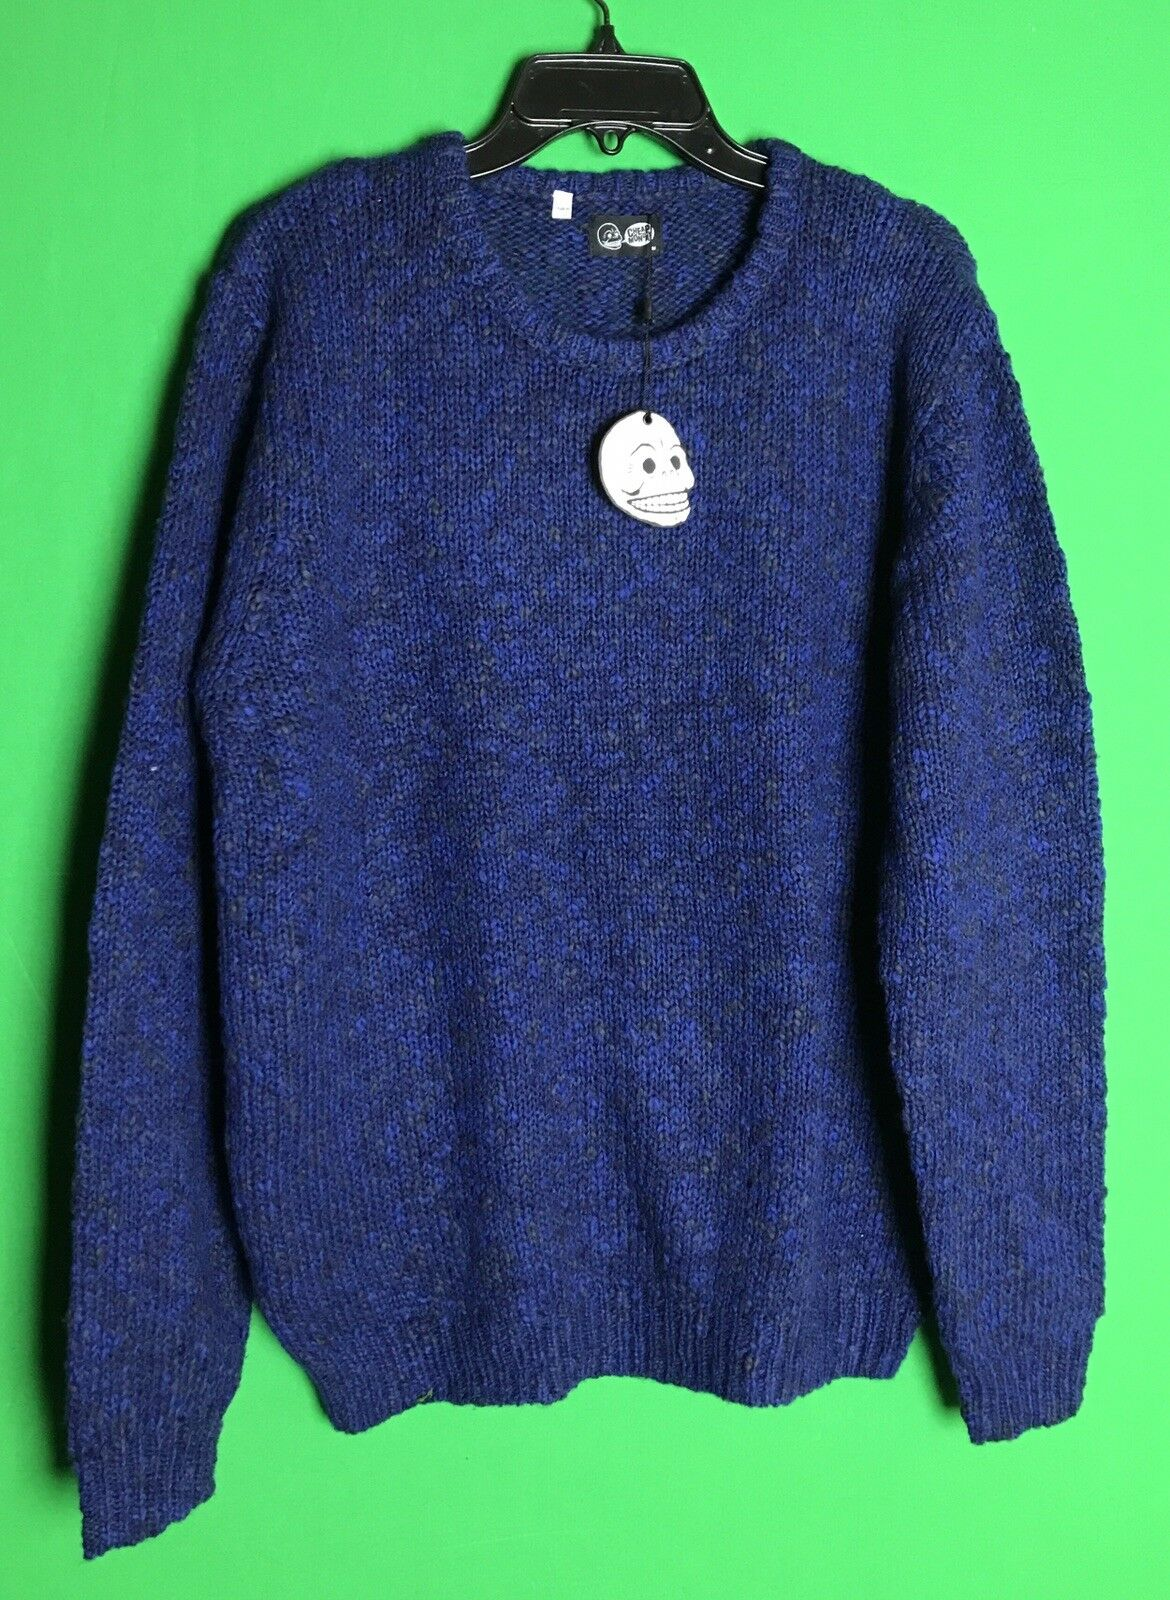 Cheap Monday Juniors Tweed Knit Sweater Dark bluee Melange Size Medium. NWT